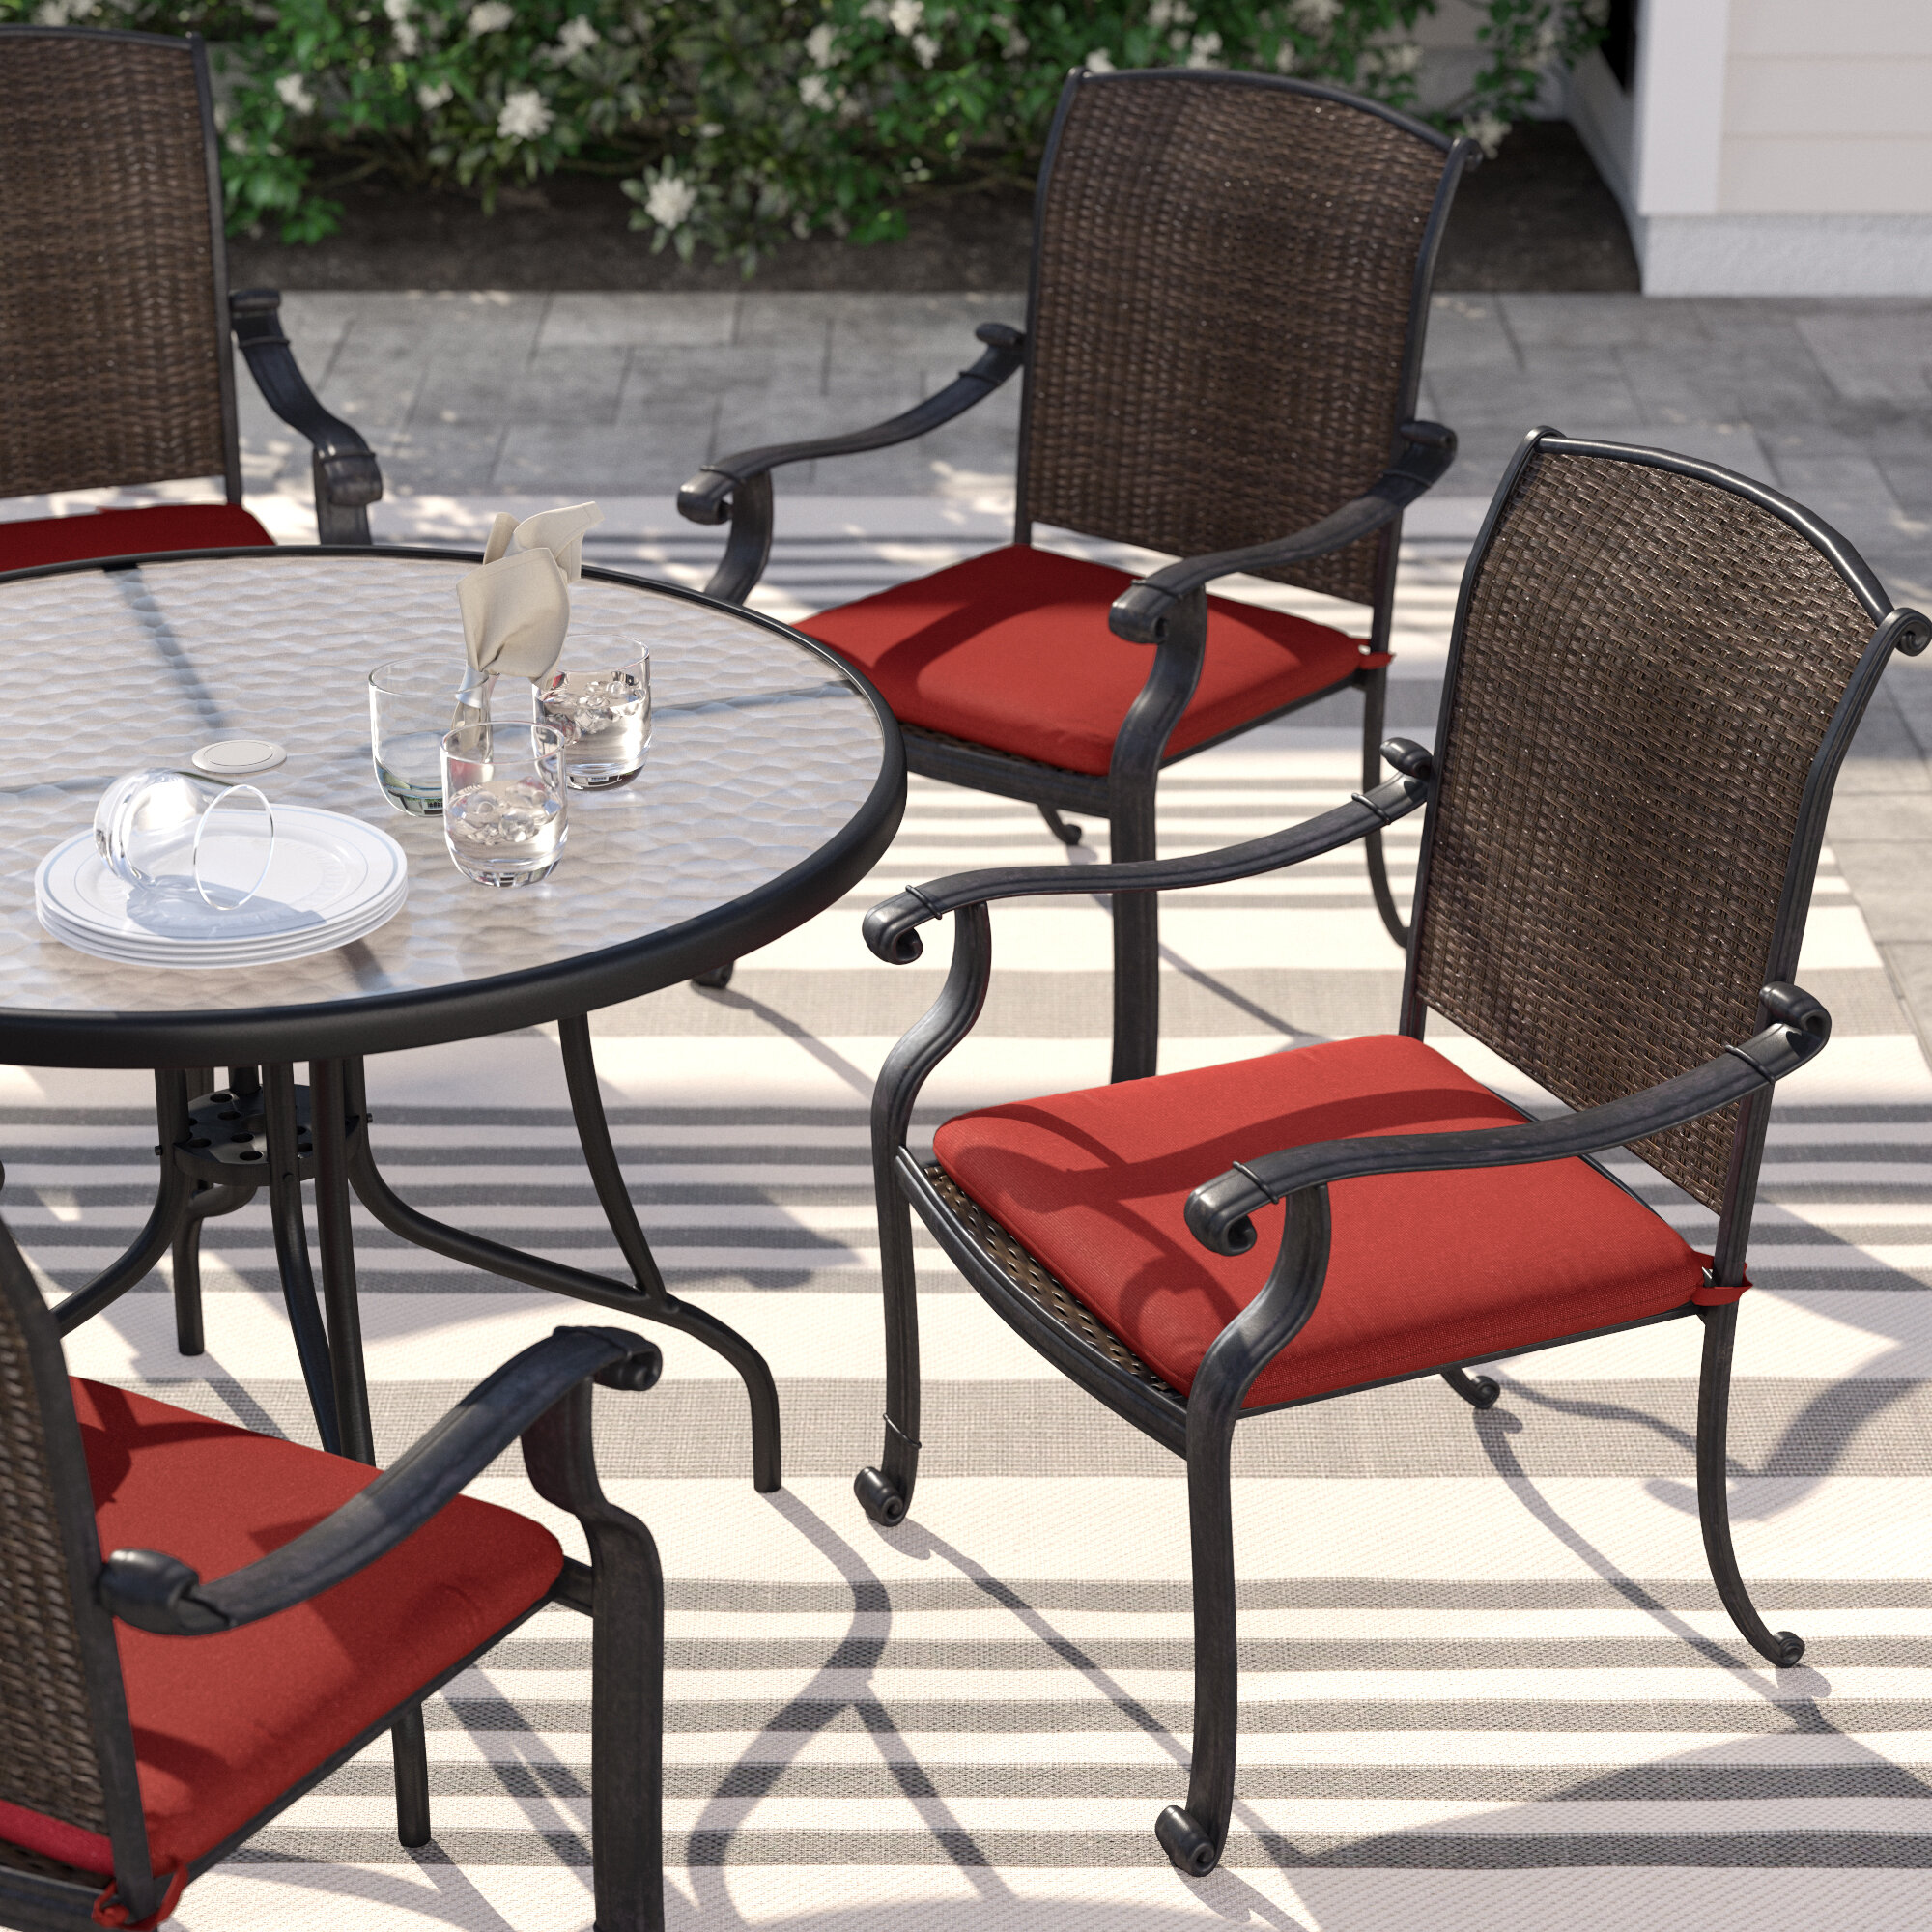 Round Home Chair Pads Dining Home Seat Pads Indoor Outdoor  Stool Patio HX